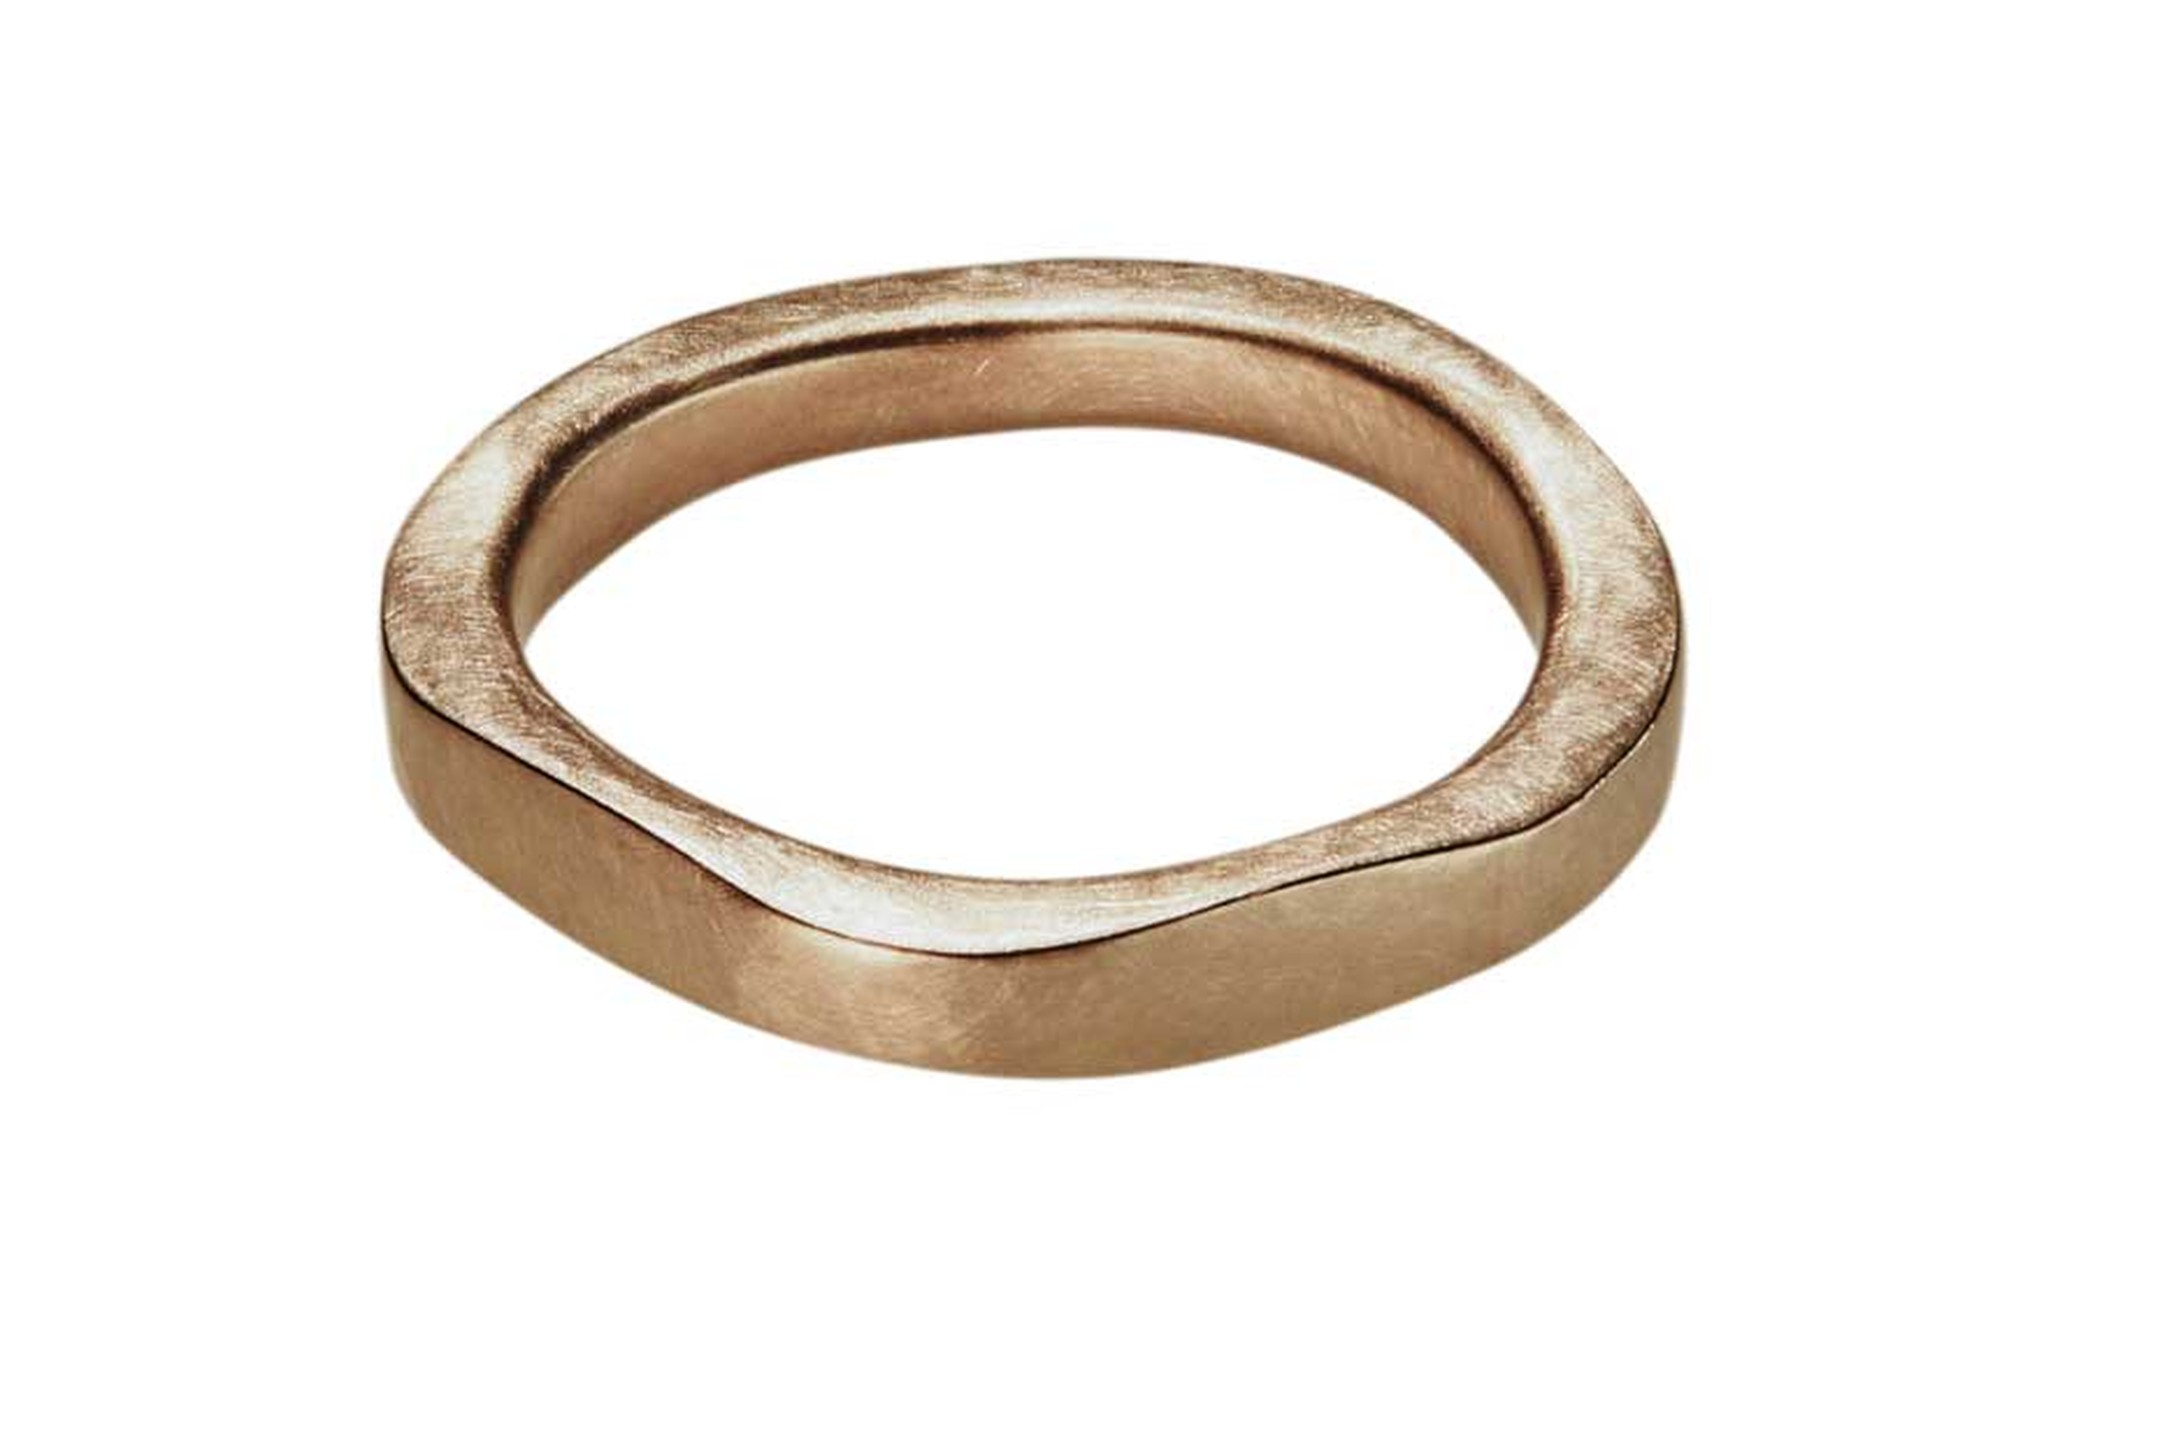 Cox & Power's London forged wedding band in Fairtrade gold.